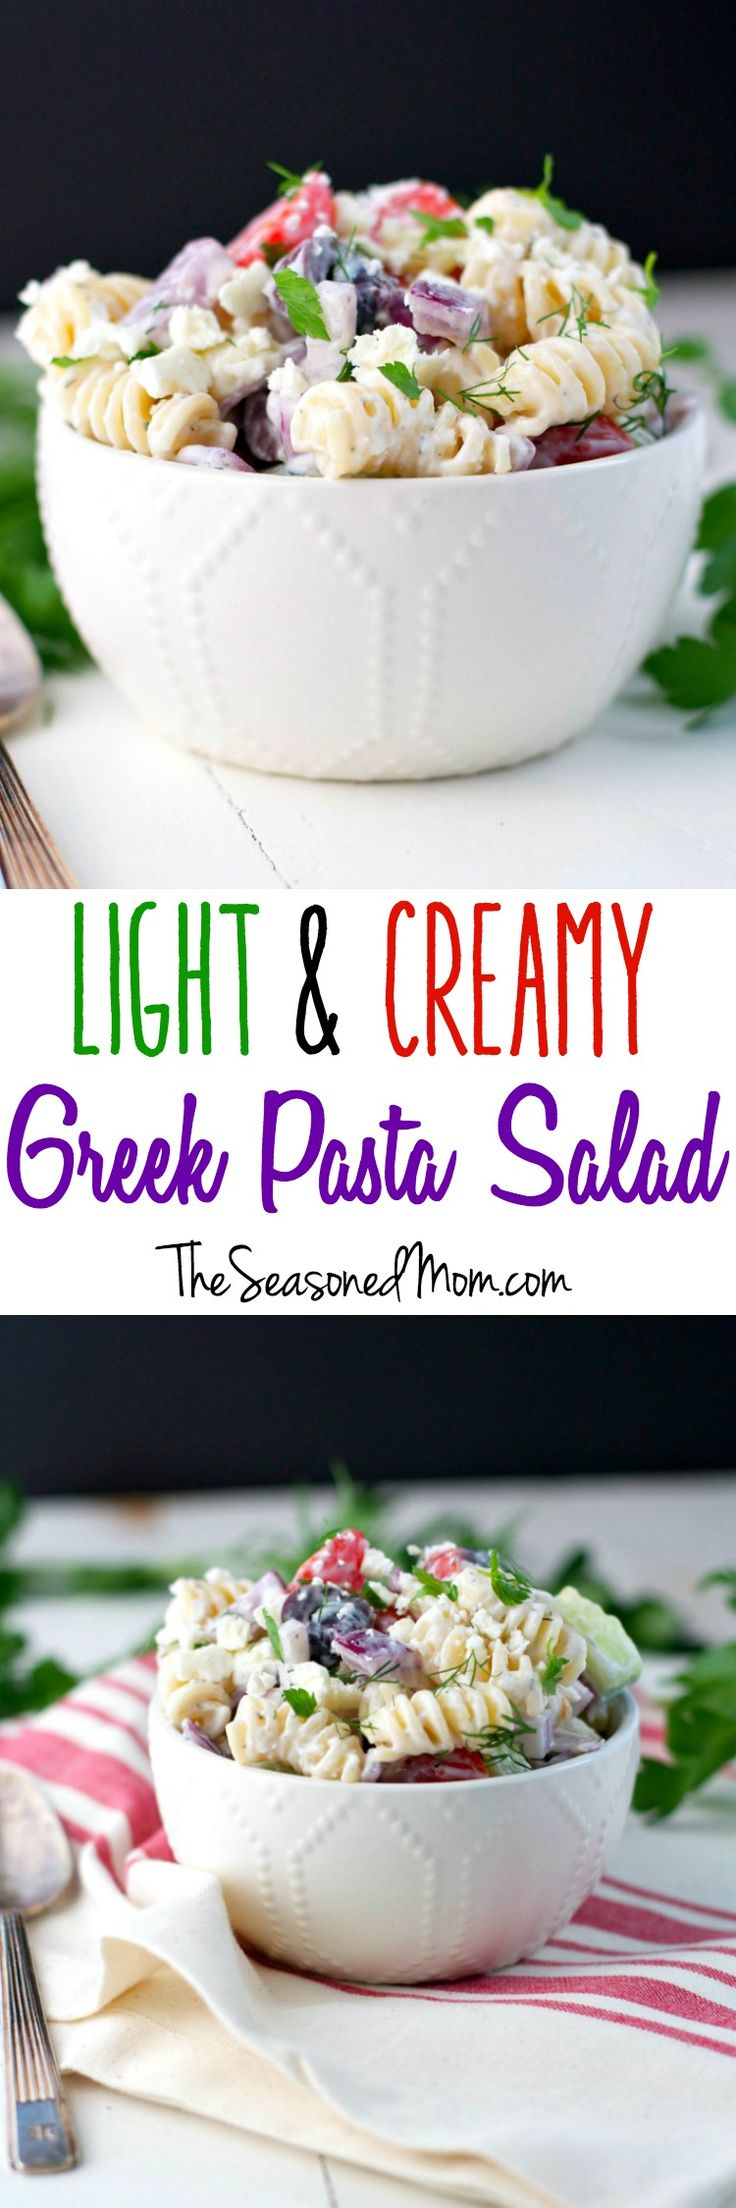 Loaded with fresh veggies, olives, artichoke hearts, and feta cheese and then dressed in a yogurt-based garlic and cucumber Tzatziki Sauce, this Light and Creamy Greek Pasta Salad is a flavorful side dish or vegetarian main course that's perfect for picnics, potlucks, and make-ahead lunches this season! Best of all, the quick and easy recipe is ready in about 20 minutes!